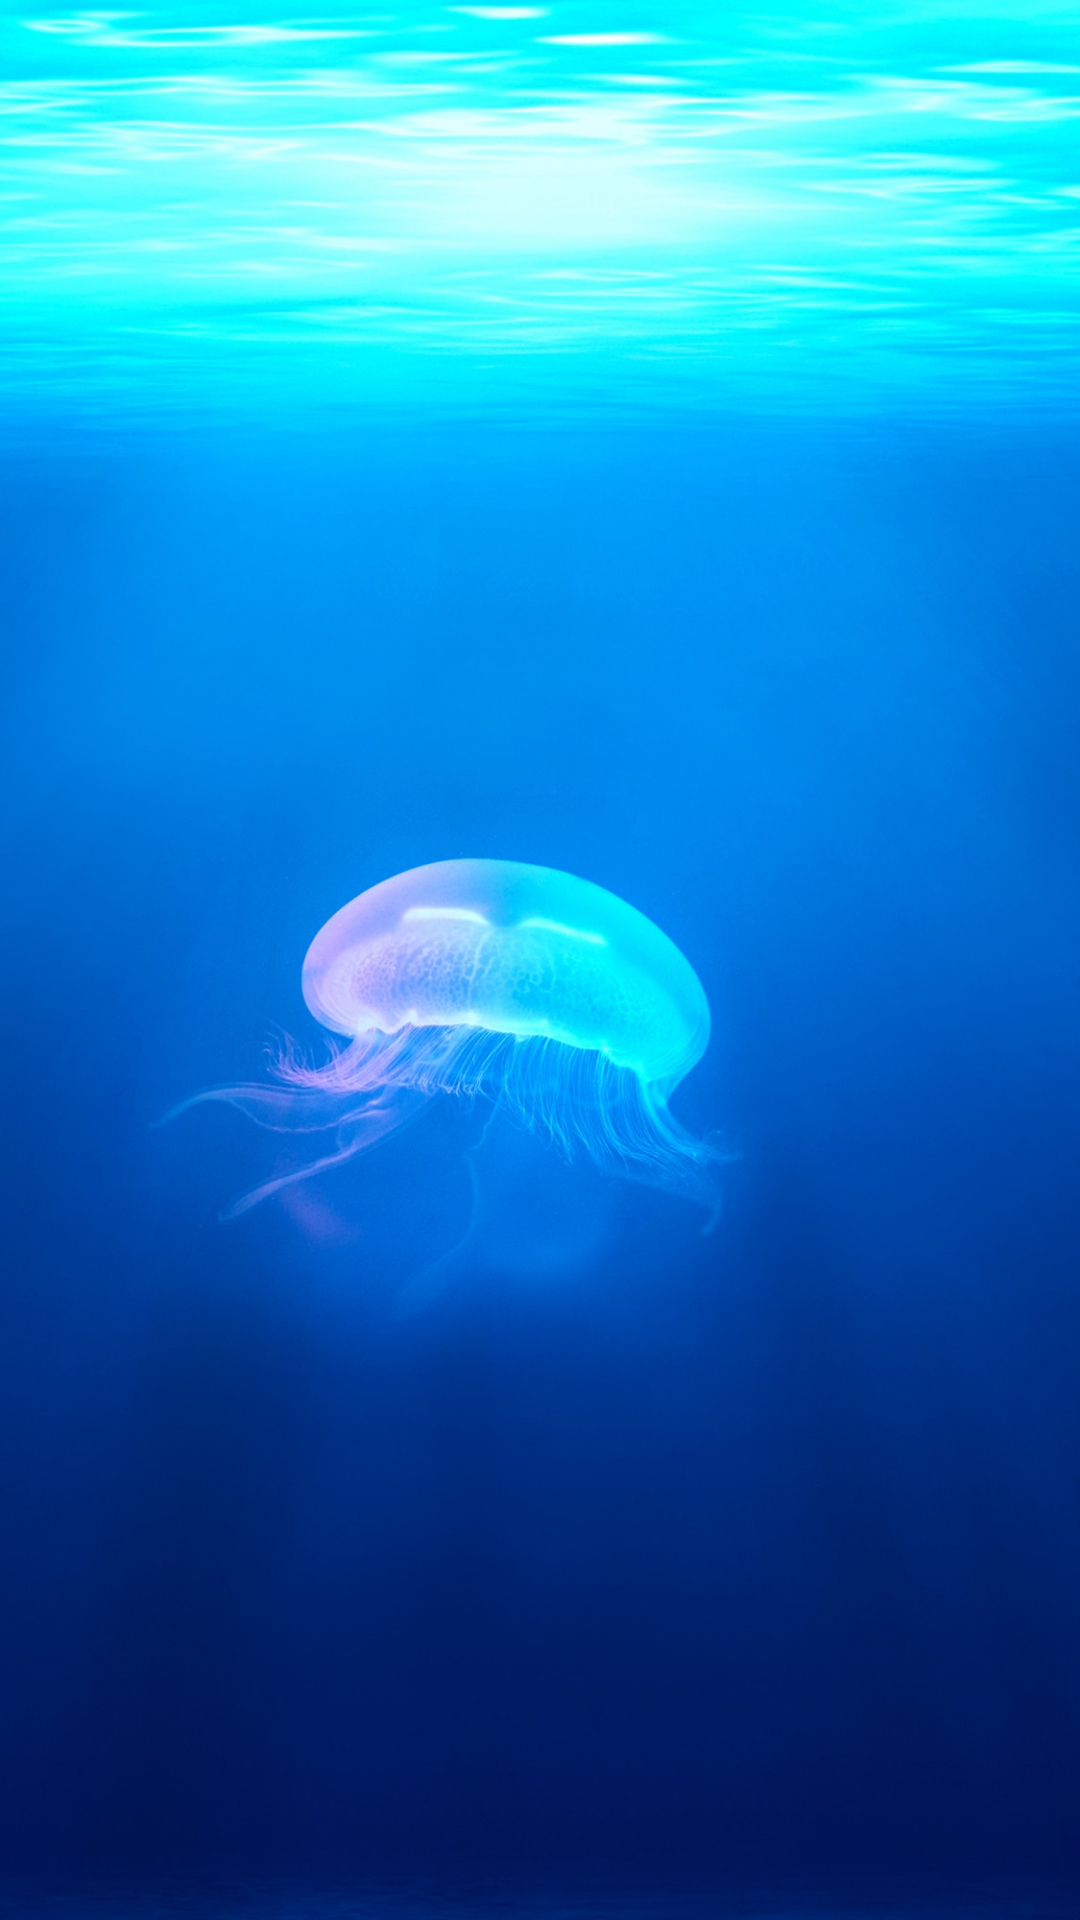 iPhone Wallpaper Jellyfish Water Ocean Jellyfish